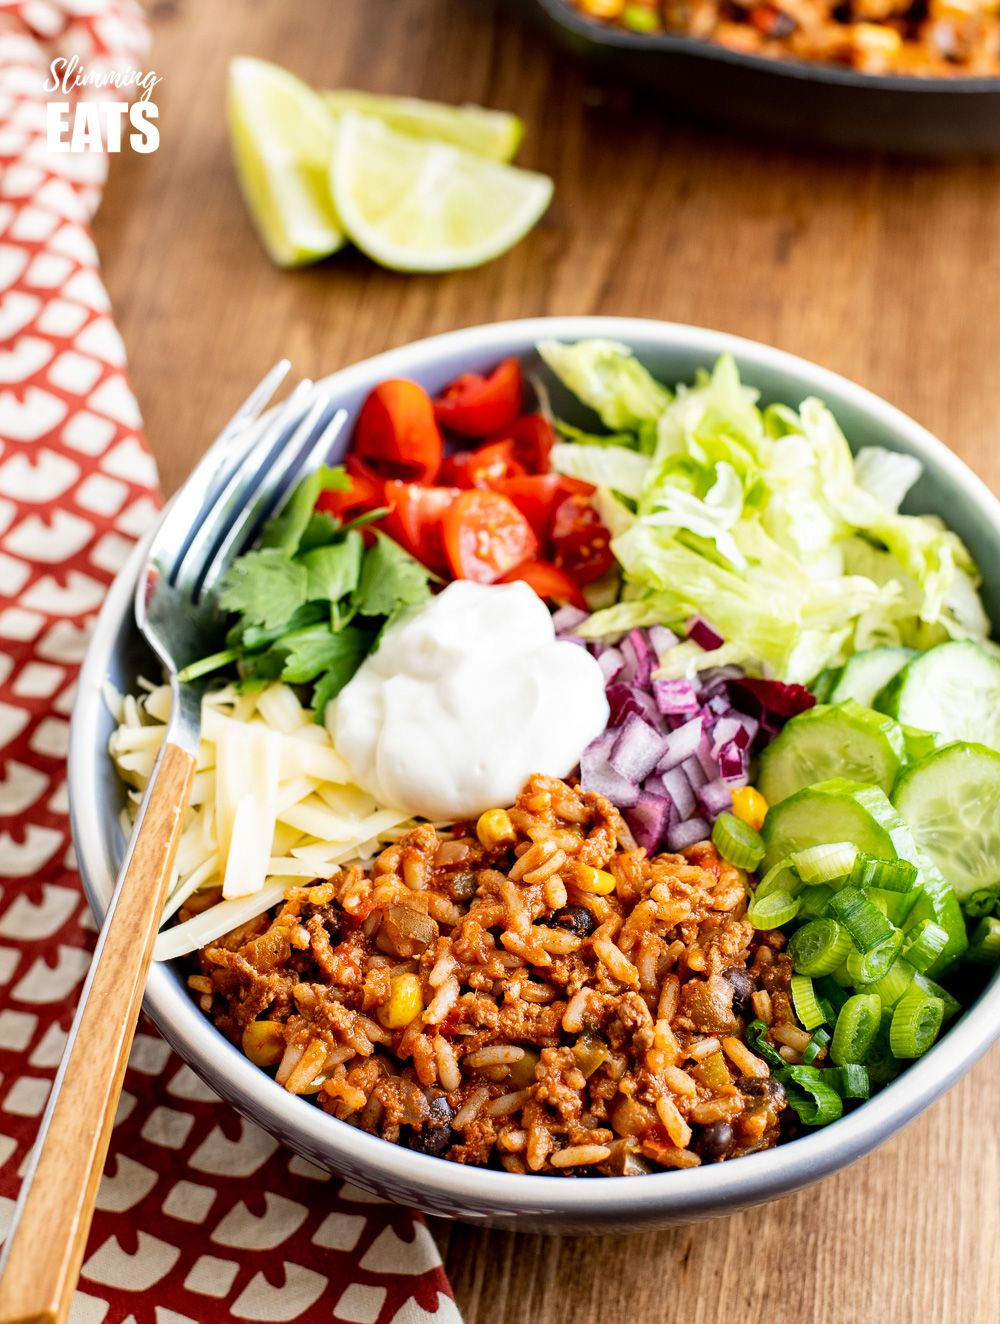 These Turkey Rice Burrito Bowls make a great family meal